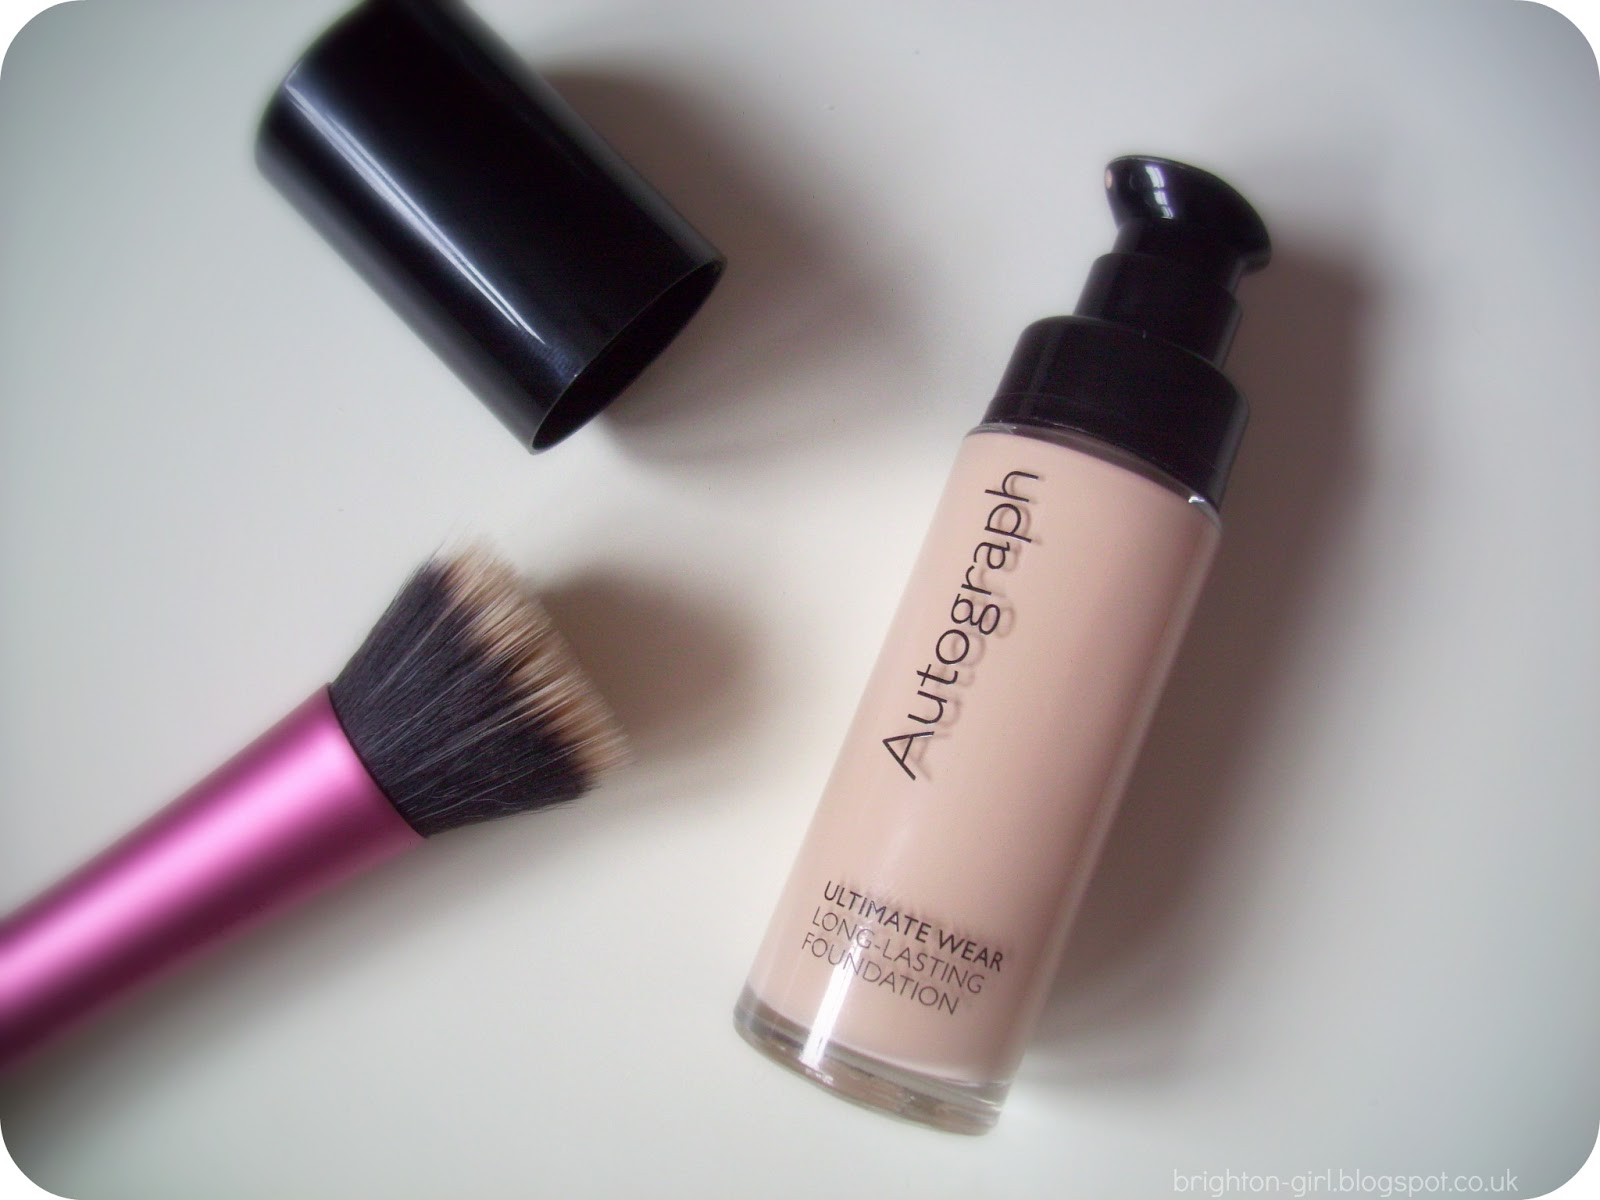 Autograph's Ultimate Wear foundation is £12 for 28ml, compared to £20.50 for 30ml of Studio Fix Fluid.